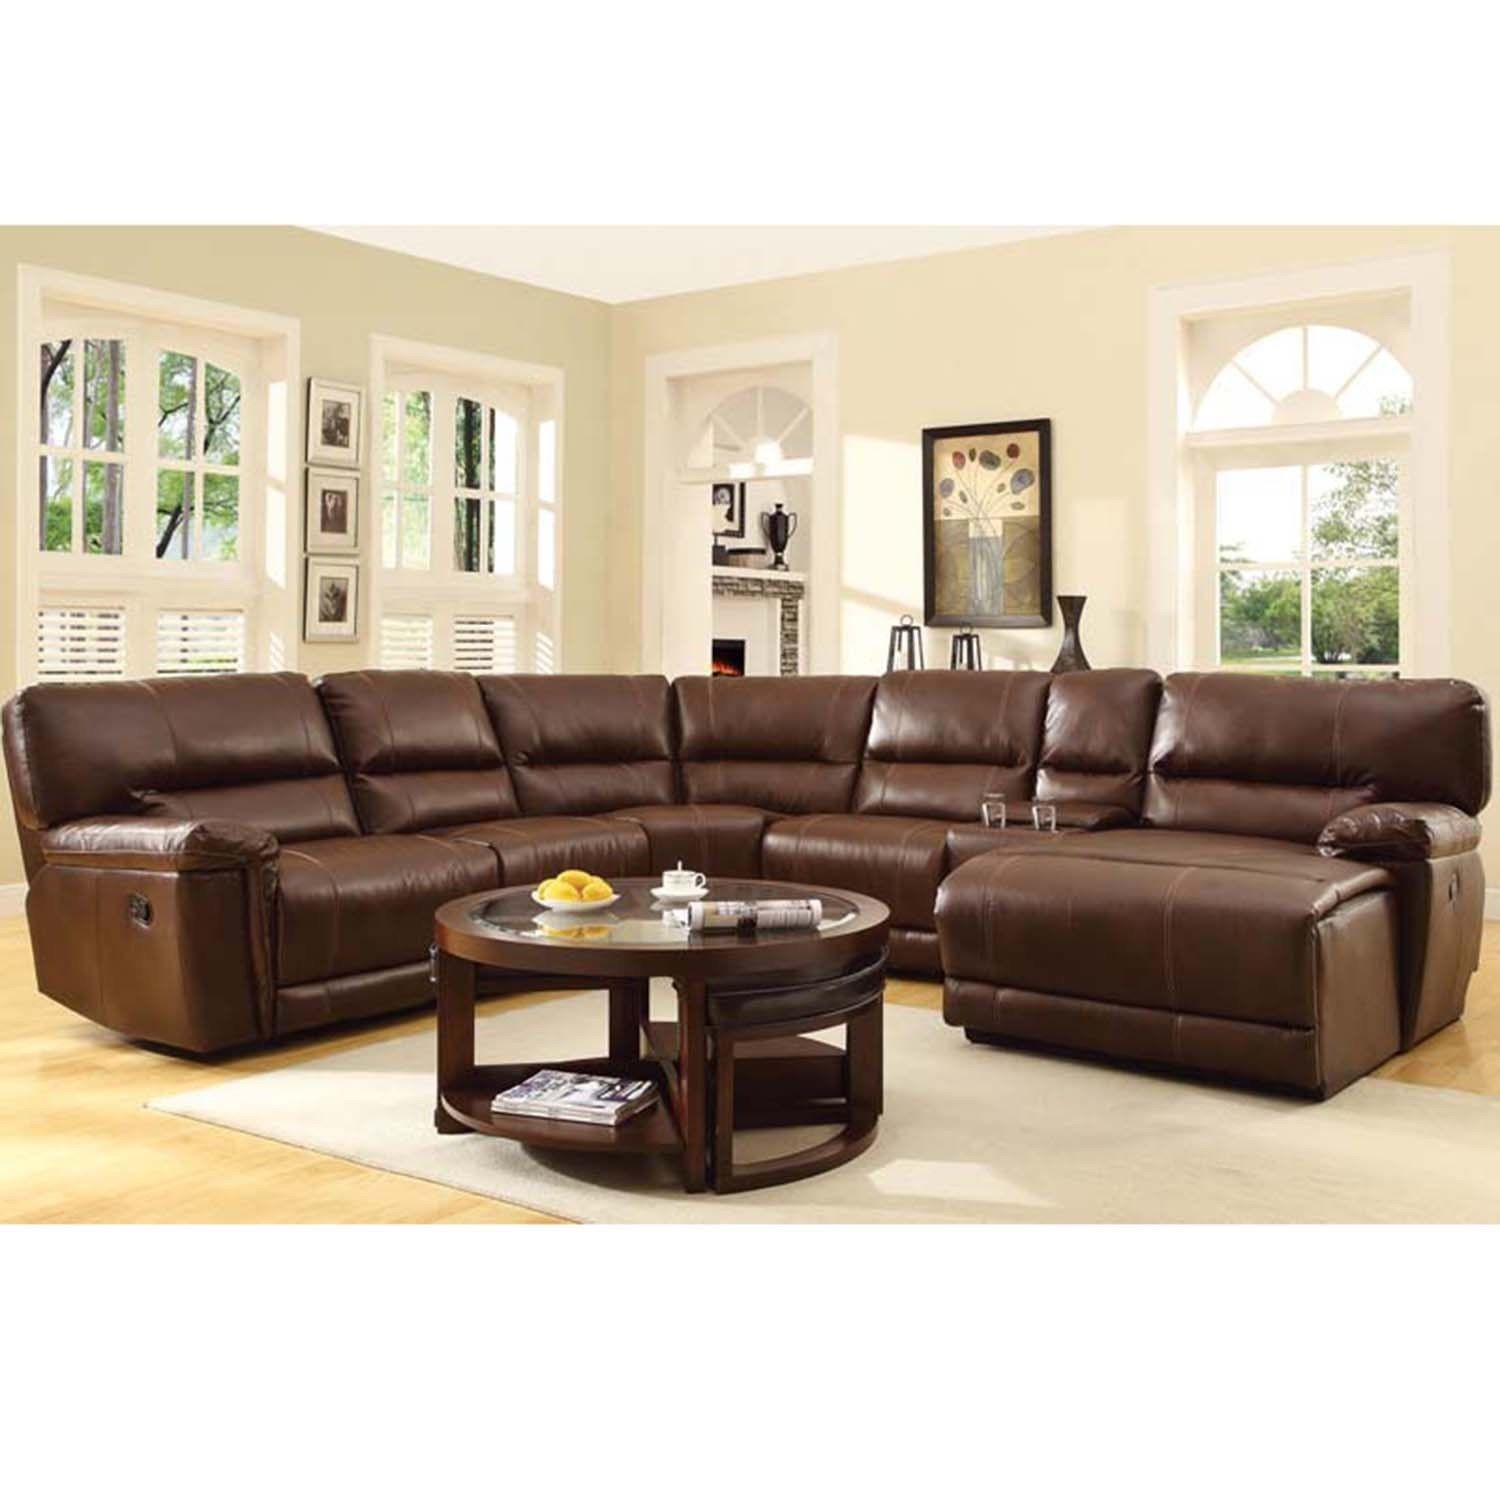 Hardy Bonded Leather Reclining Sectional With Chaise Ping S On Sofas